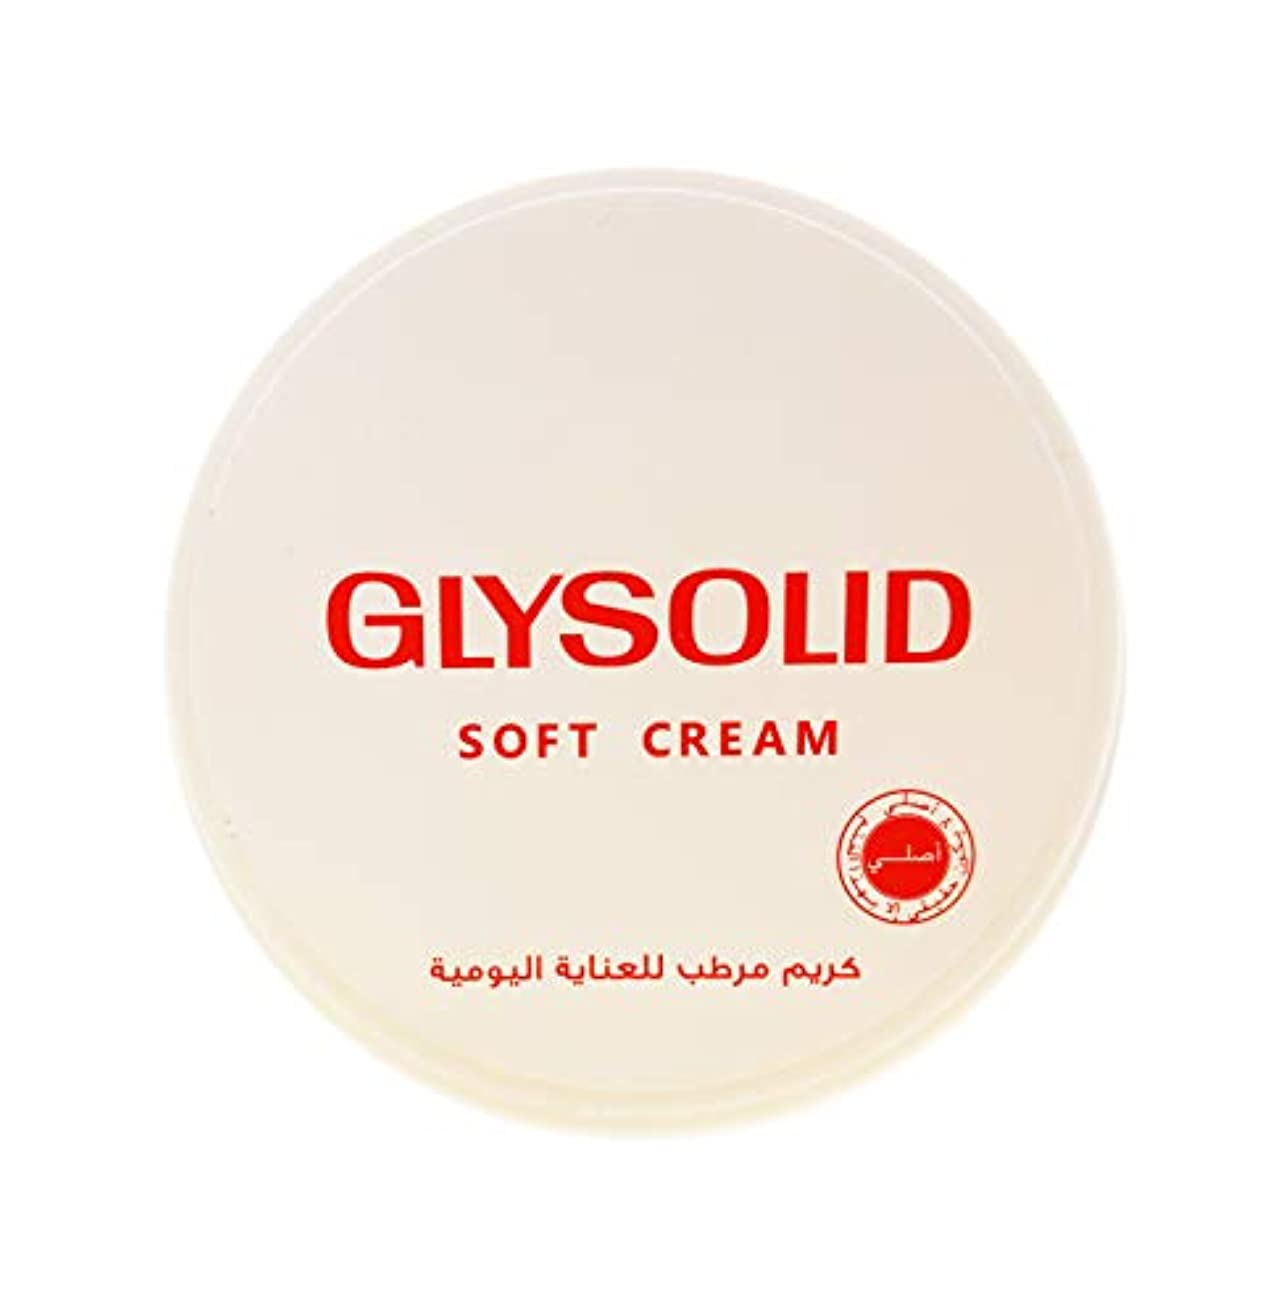 Glysolid Soft Cream Moisturizers For Dry Skin Face Hands Feet Elbow Body Softening With Glycerin Keeping Your...